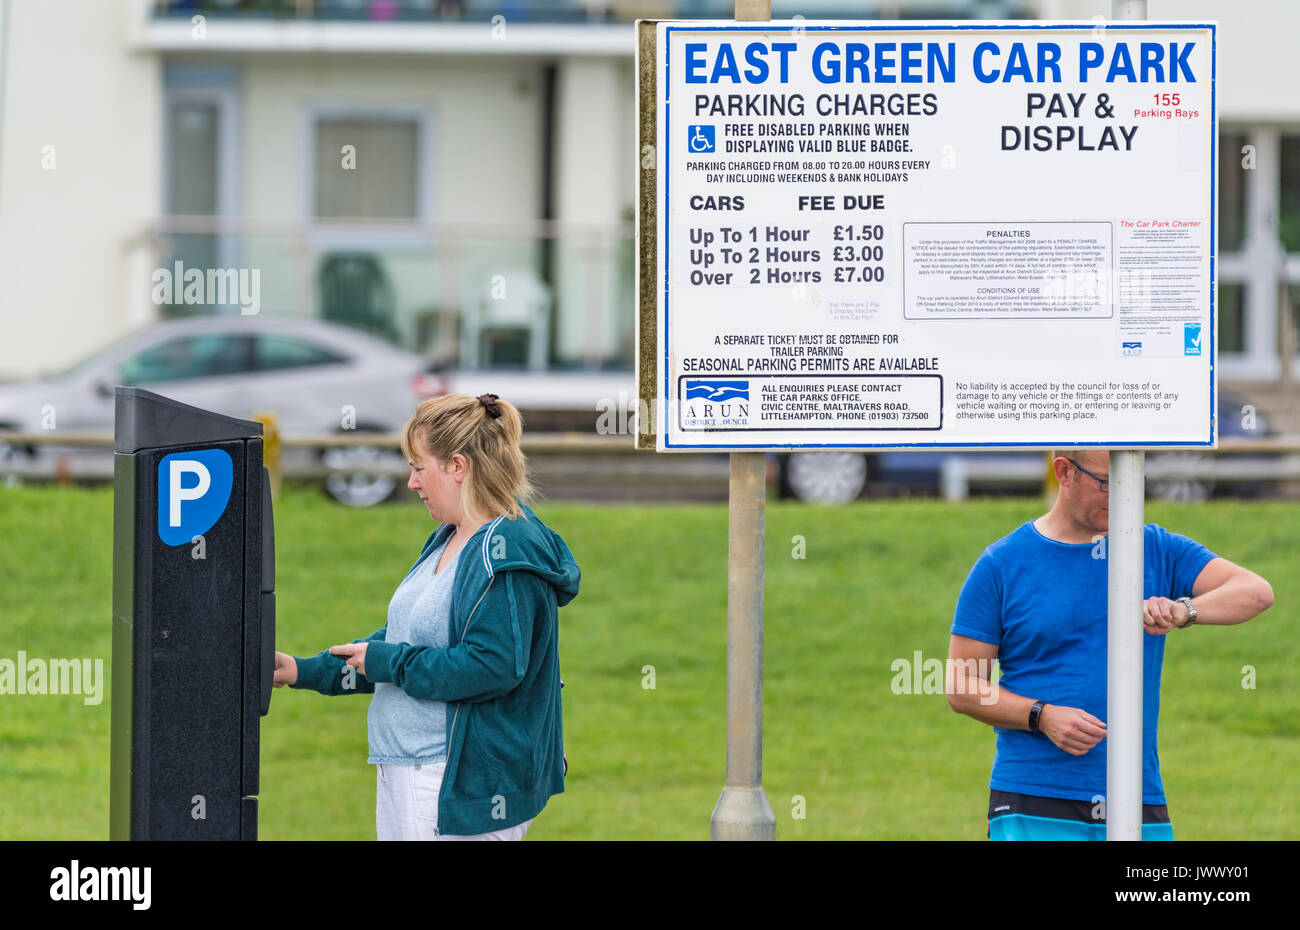 Woman putting money in a parking machine pour acheter un billet à payer et afficher une location Park au Royaume-Uni. Photo Stock